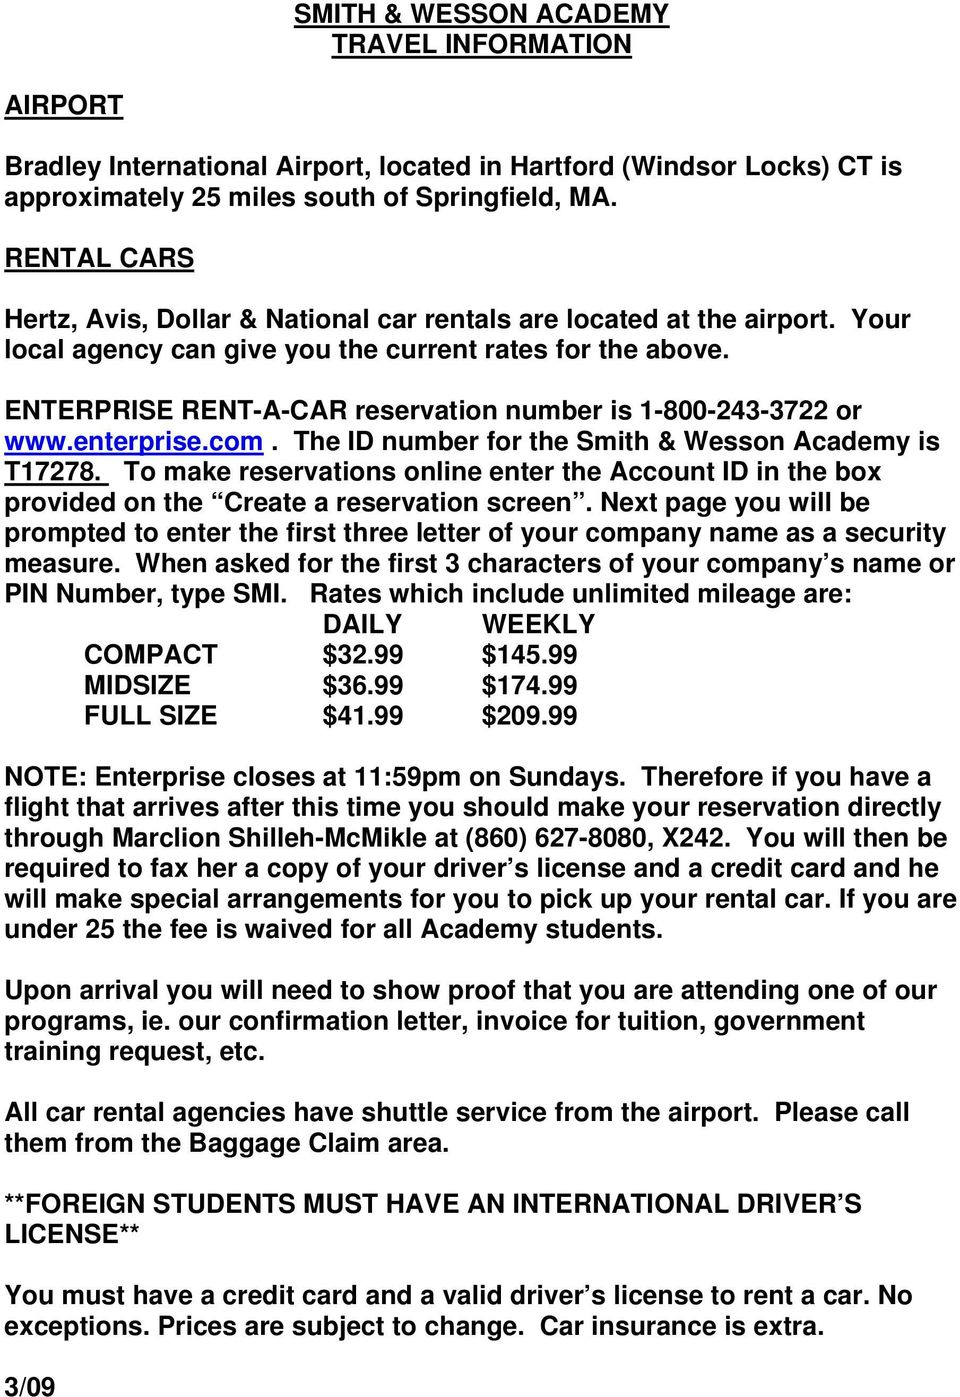 ENTERPRISE RENT-A-CAR reservation number is 1-800-243-3722 or www.enterprise.com. The ID number for the Smith & Wesson Academy is T17278.